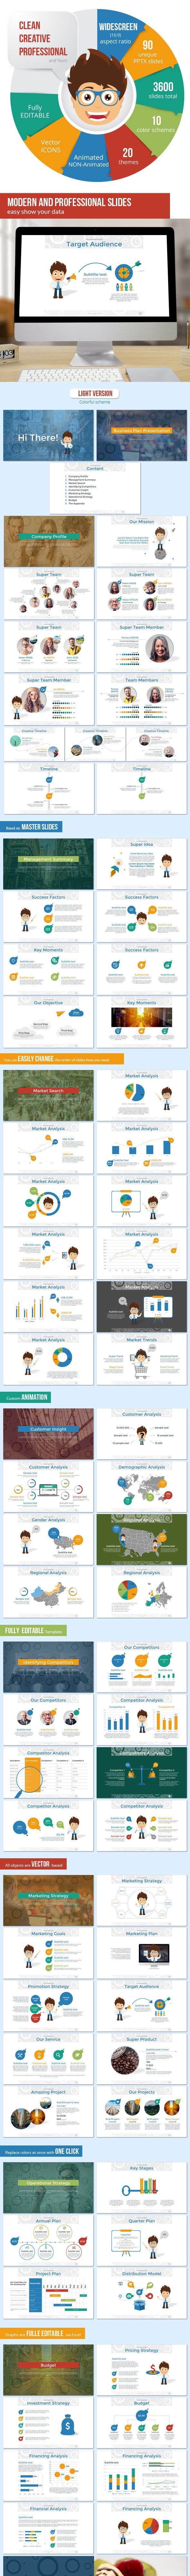 Business Plan with Mr. John Presentation Template - Pitch Deck PowerPoint Templates